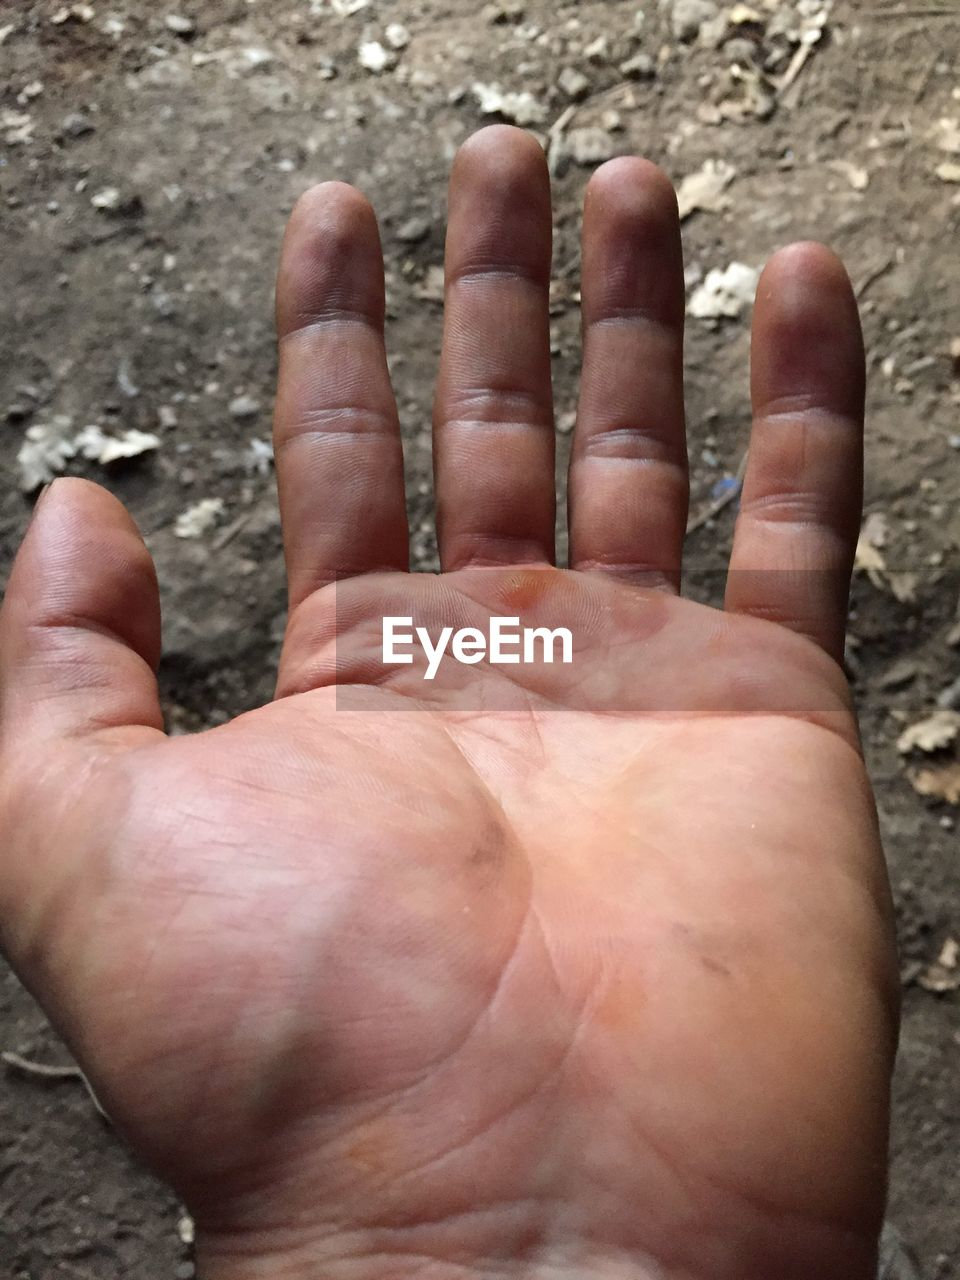 human body part, real people, one person, close-up, day, human hand, men, outdoors, people